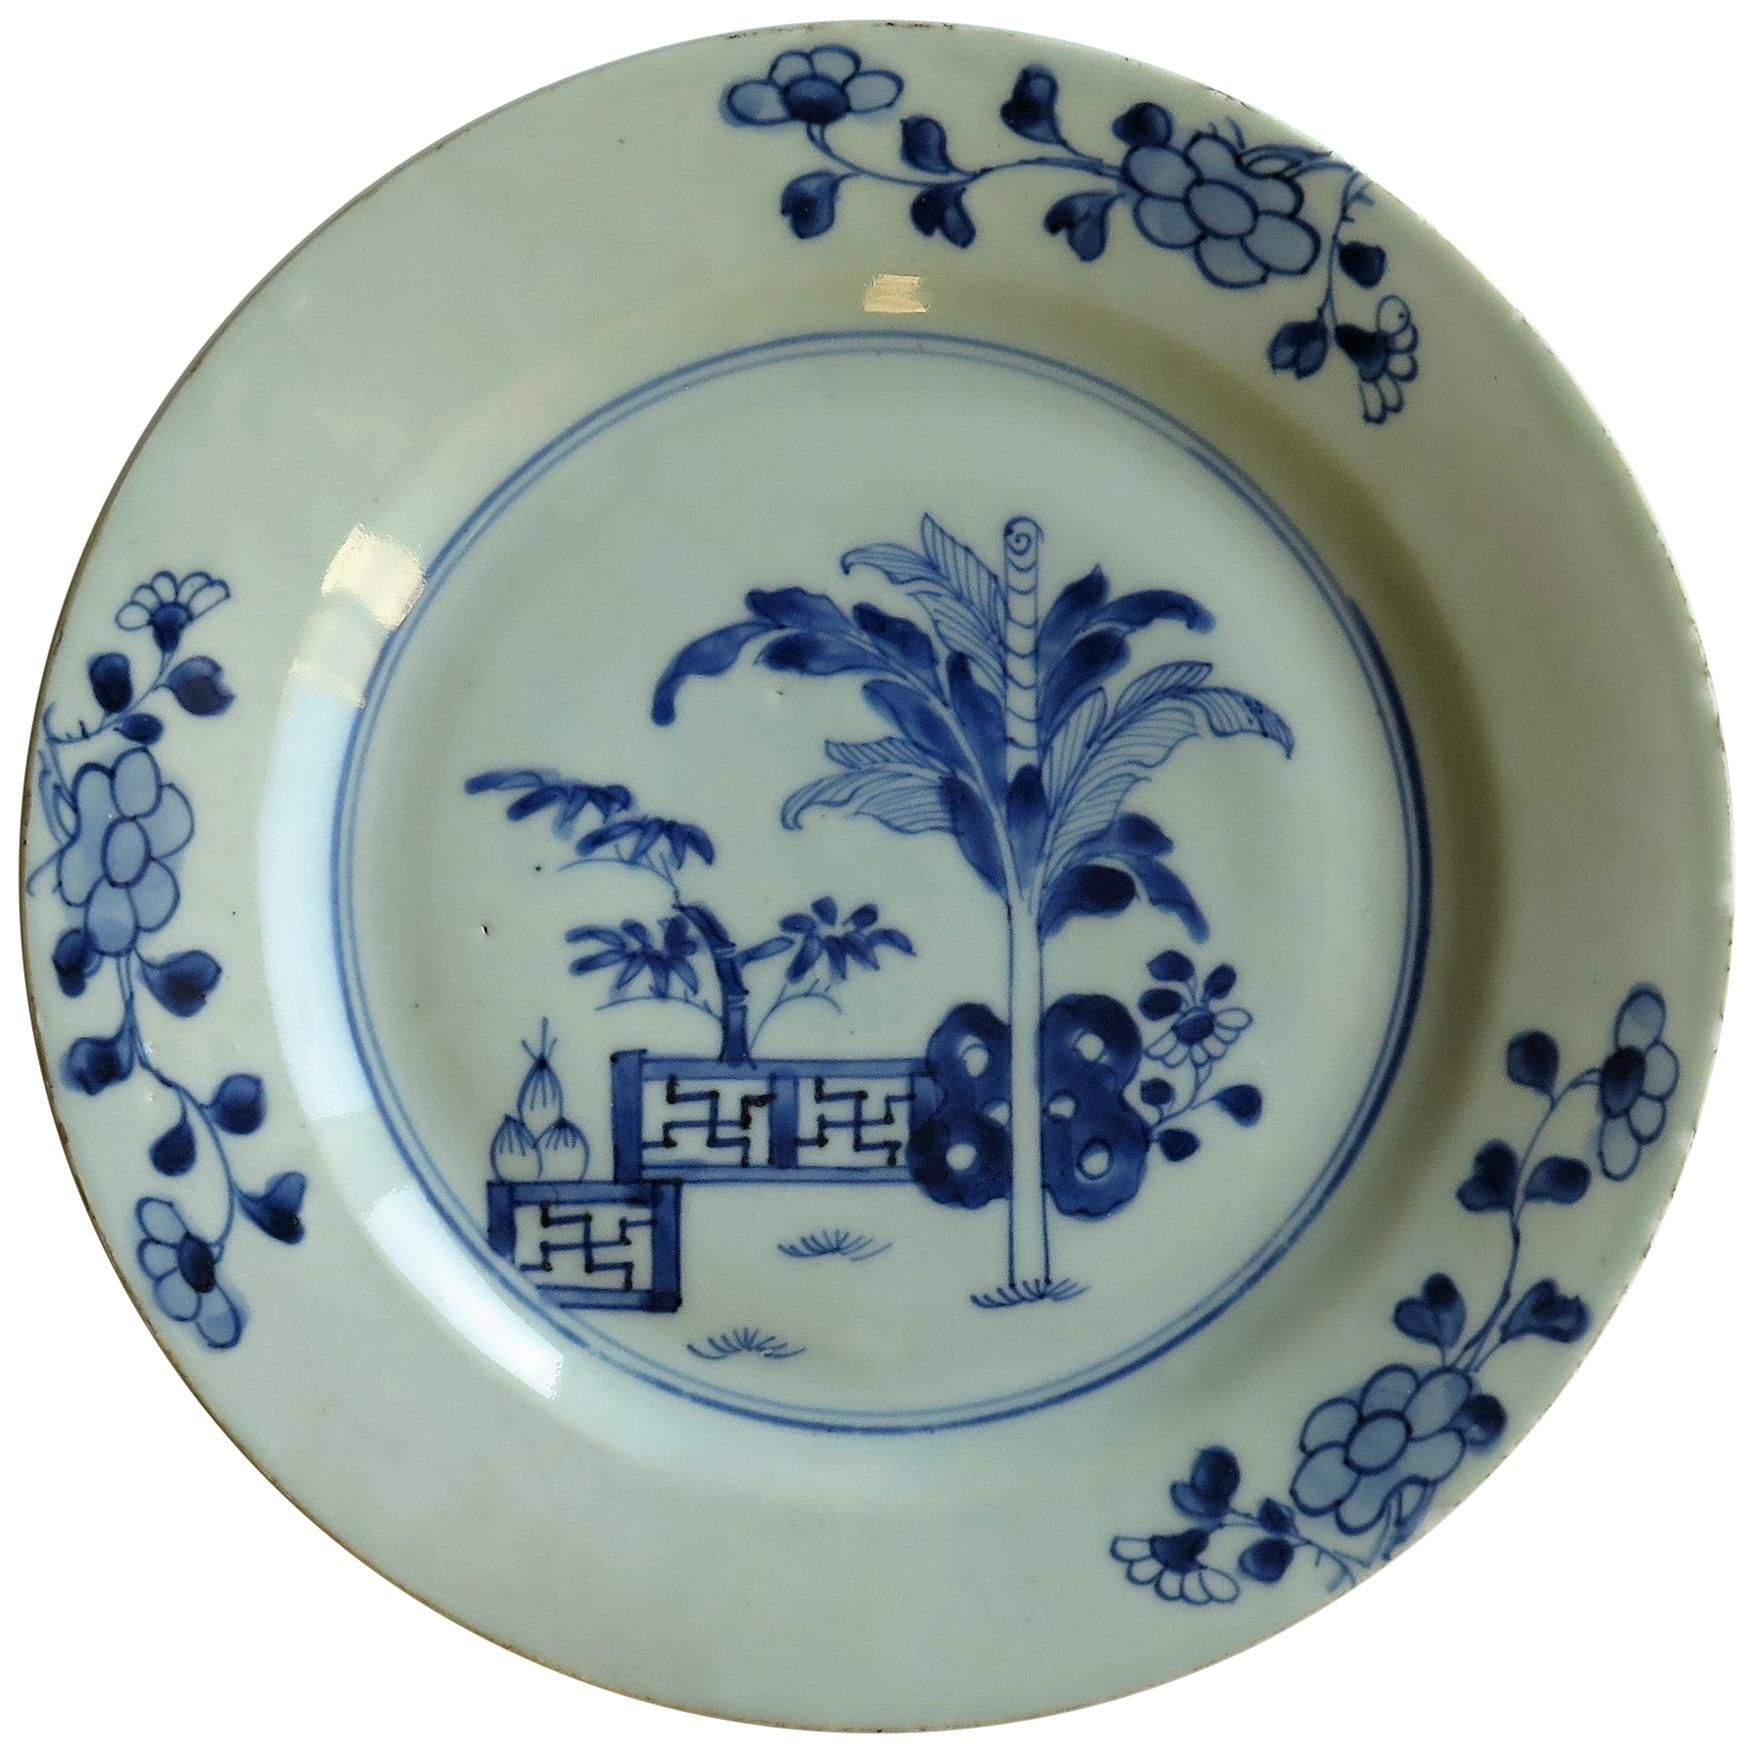 18th Century Chinese Porcelain Plate Blue and White Hand Painted, Qing